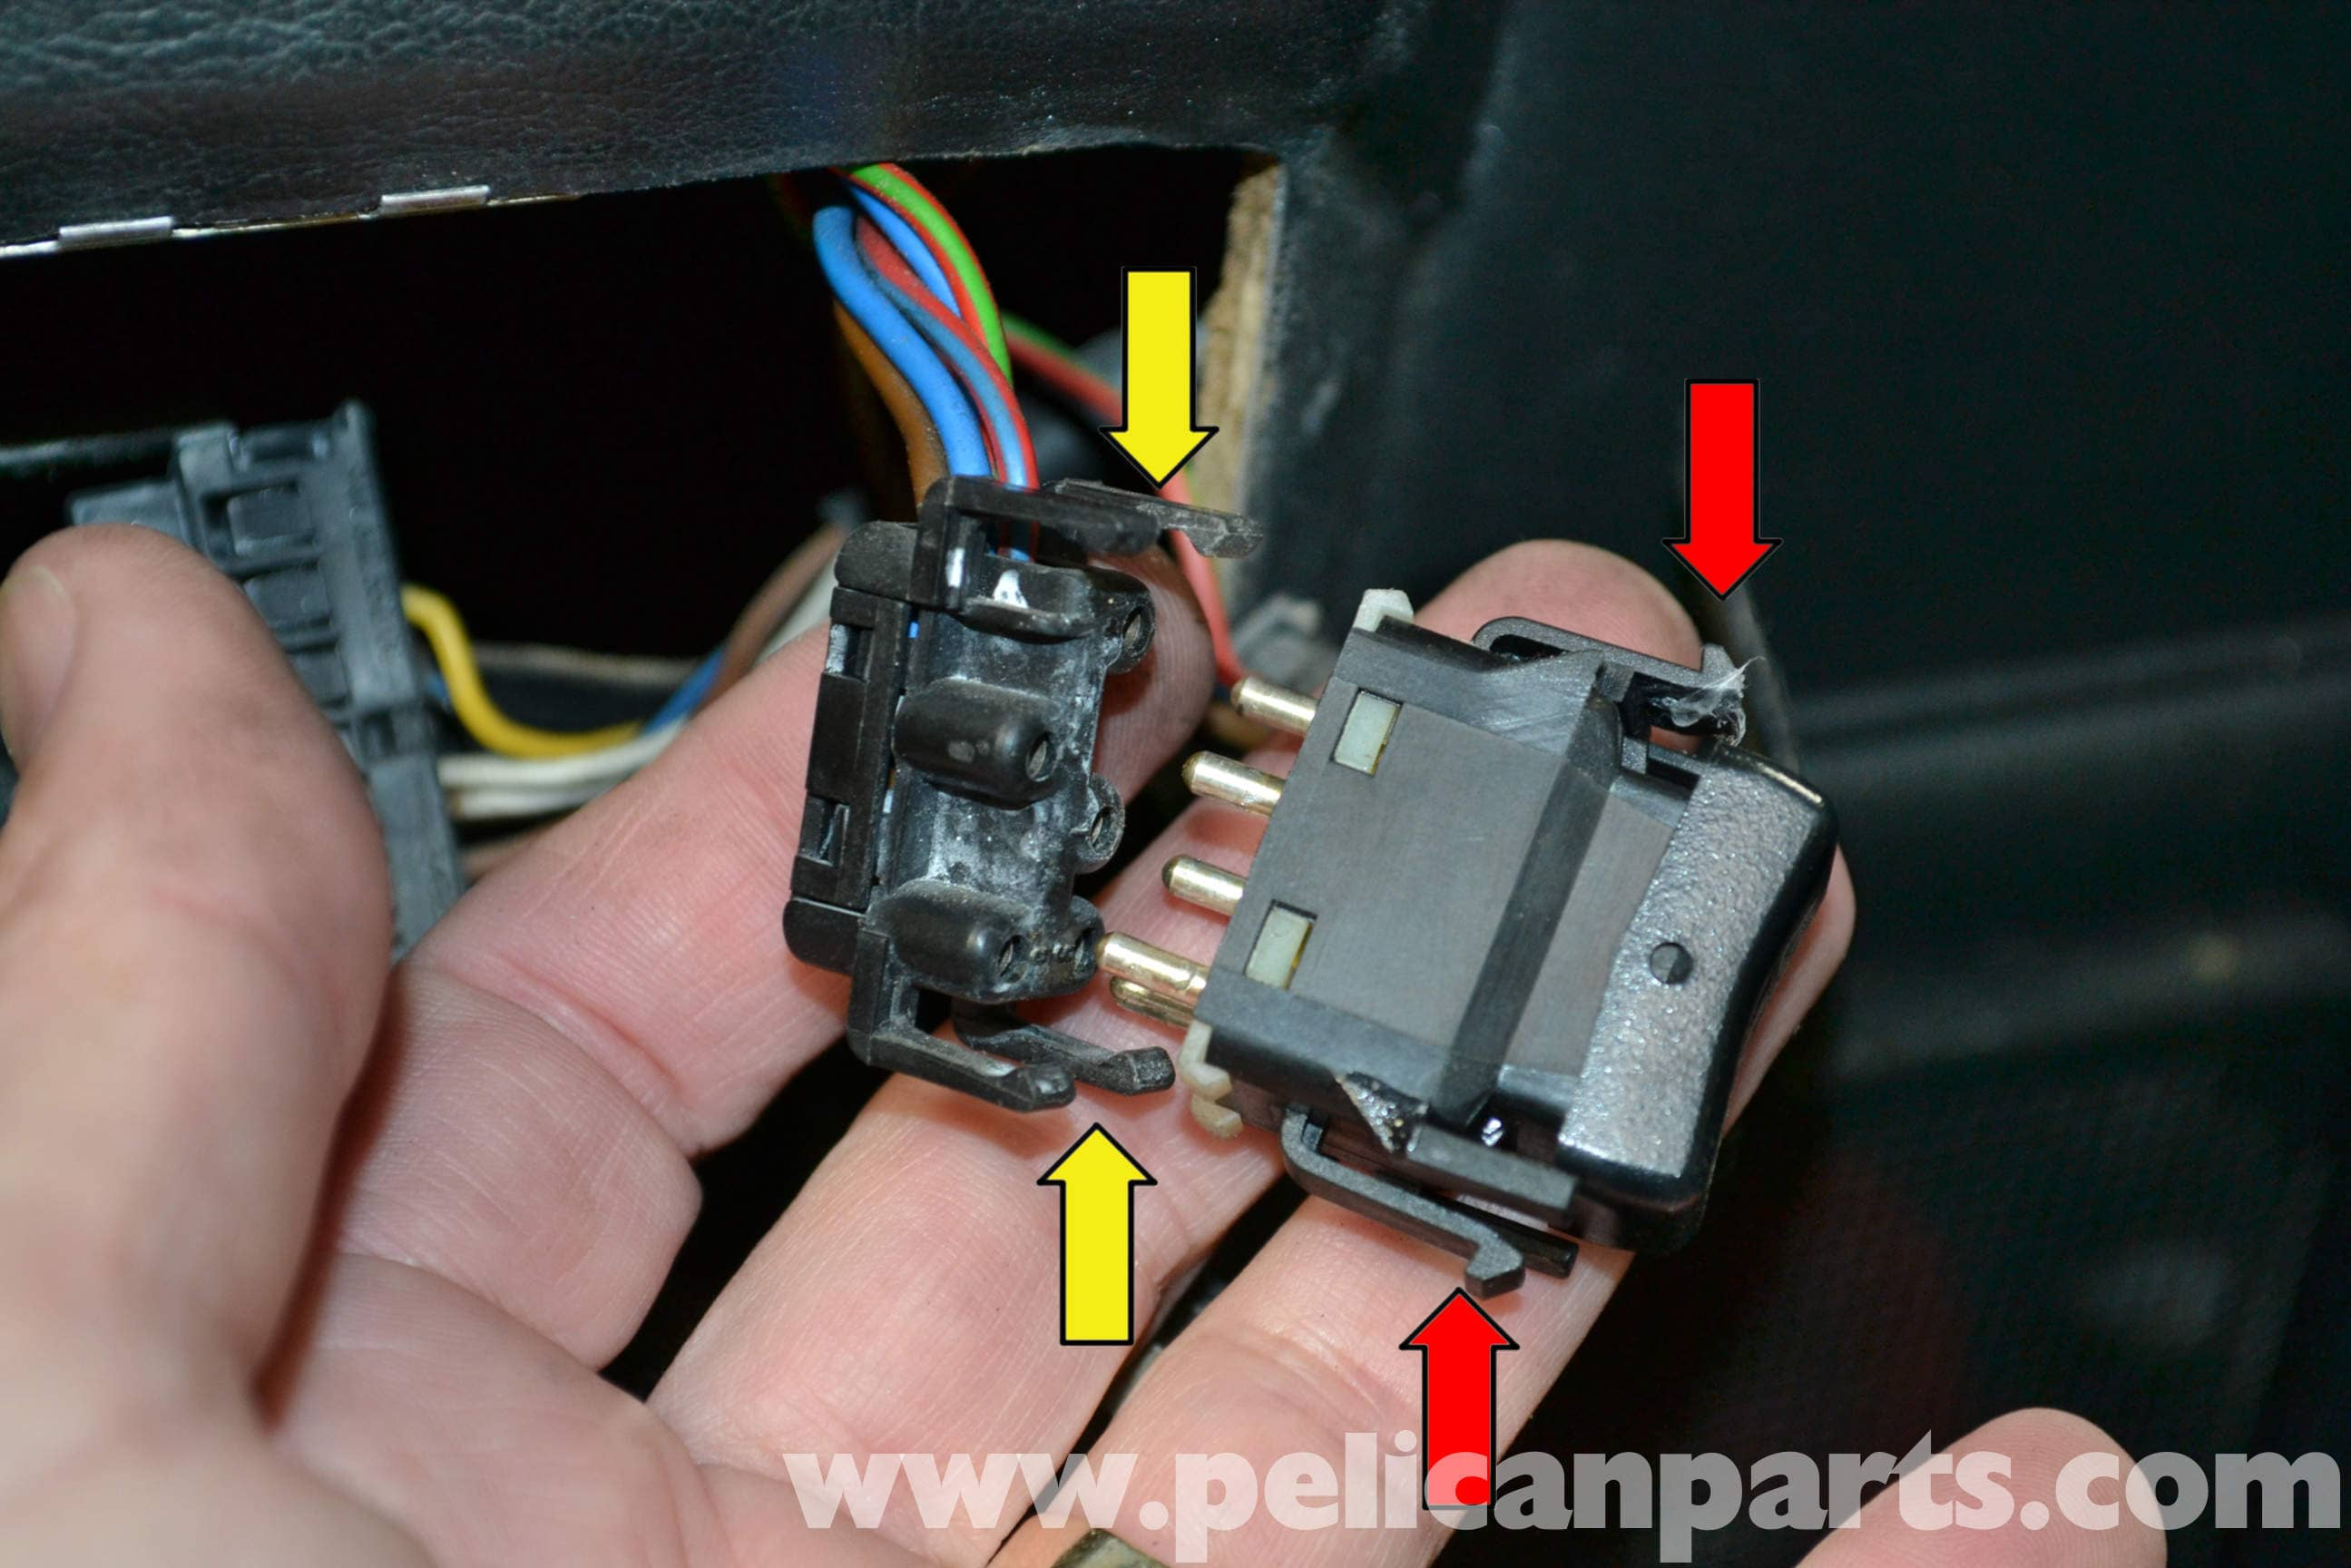 porsche 911 power window wiring diagram    porsche    944 turbo    window    and mirror switch replacement     porsche    944 turbo    window    and mirror switch replacement